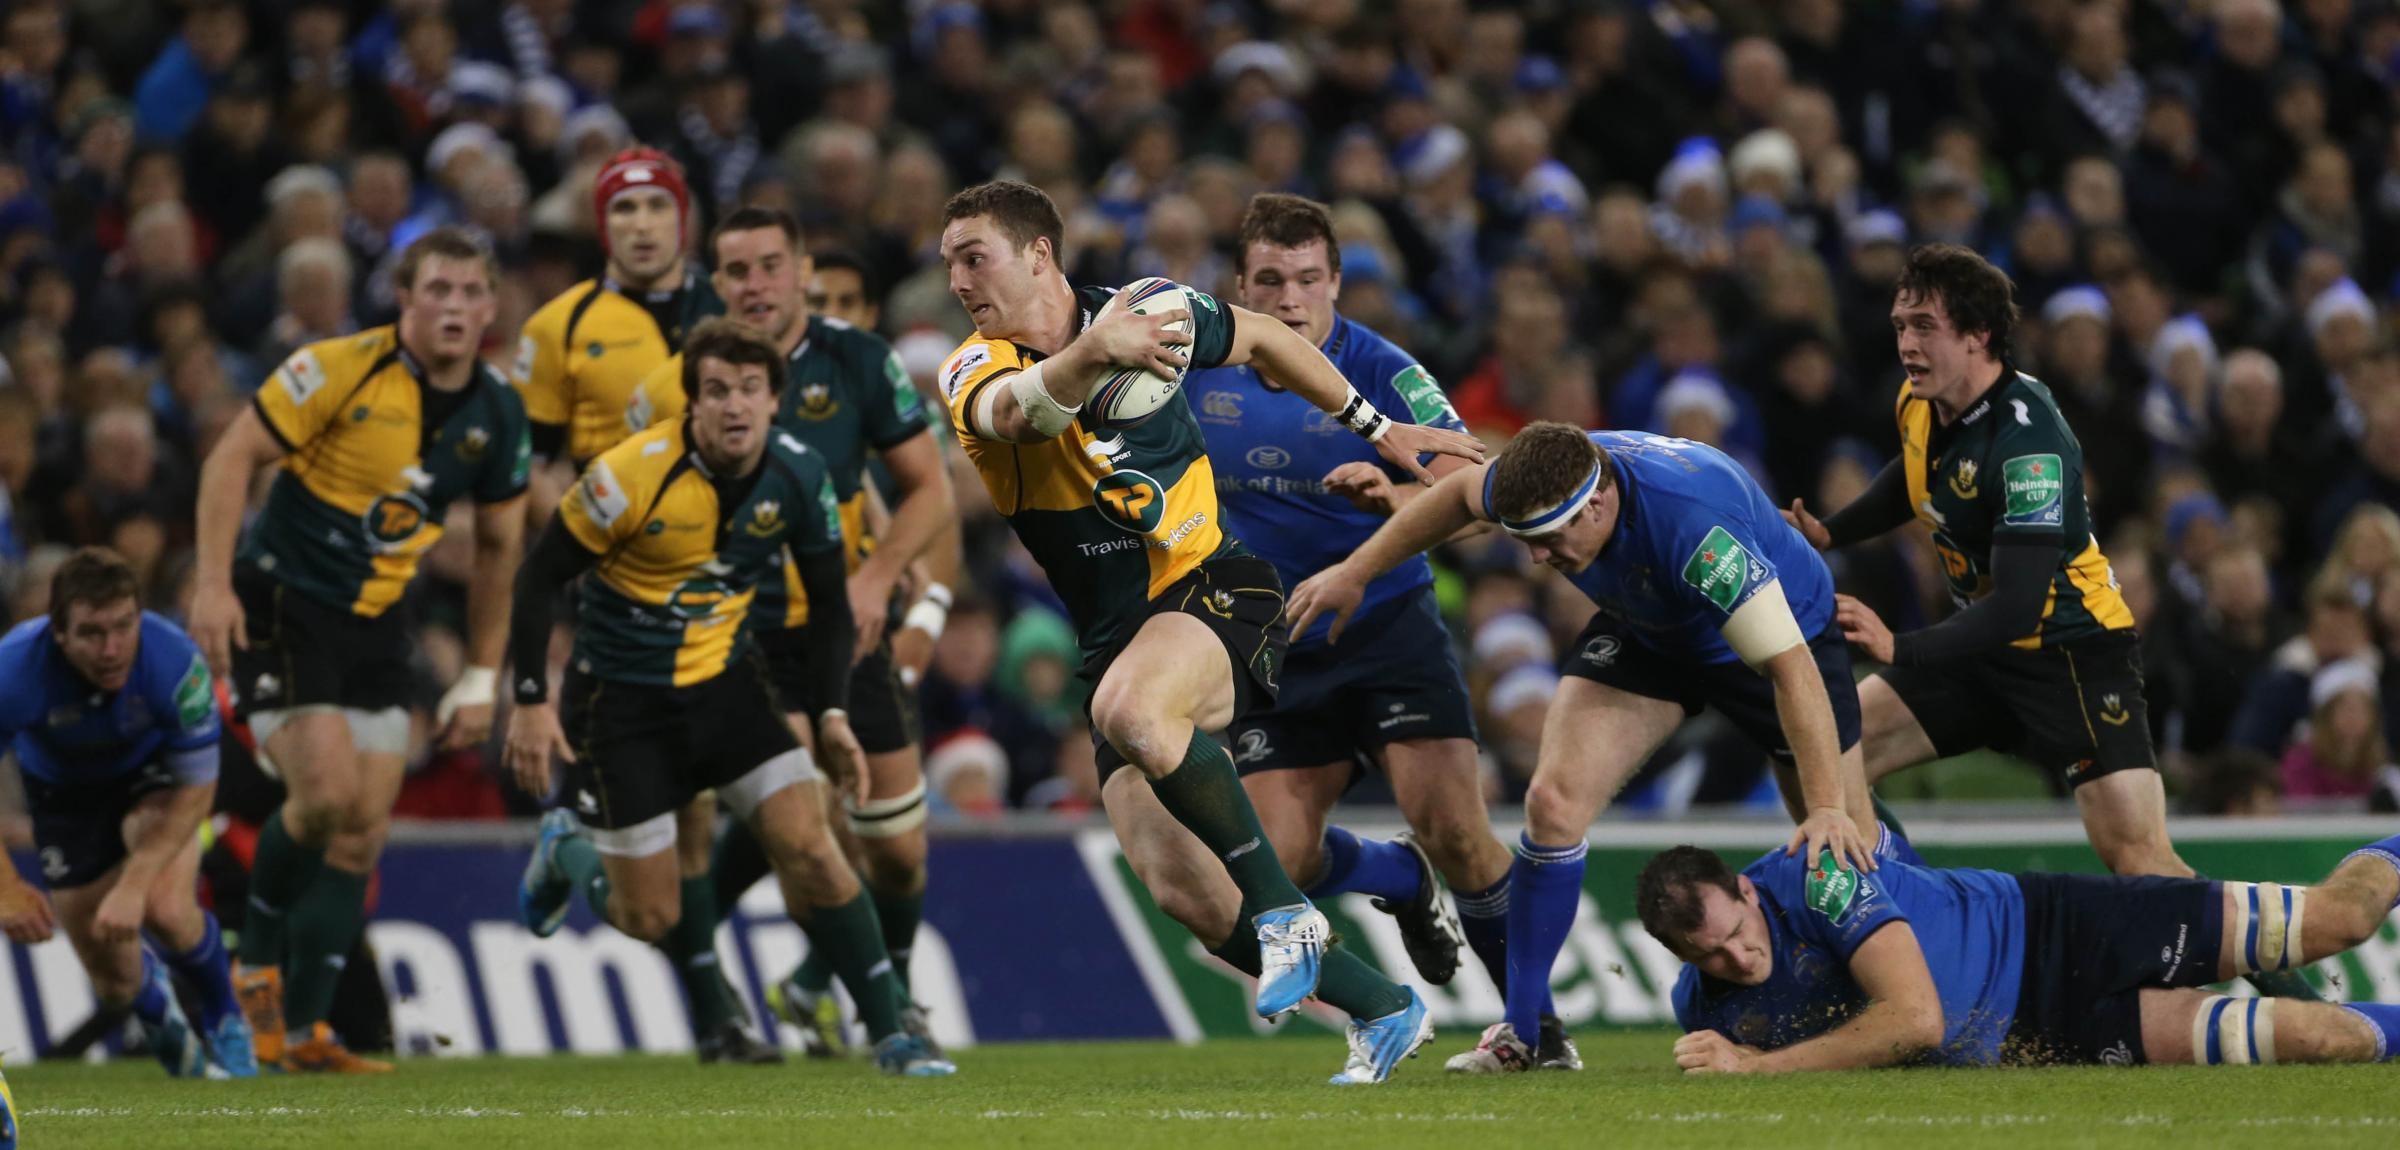 Northampton Saints George North scores a try during the Heineken Cup, Pool One match at The Aviva Stadium, Dublin, Ireland. PRESS ASSOCIATION Photo. Picture date: Saturday December 14, 2013. See PA story RUGBYU Leinster. Photo credit should read: Niall Ca